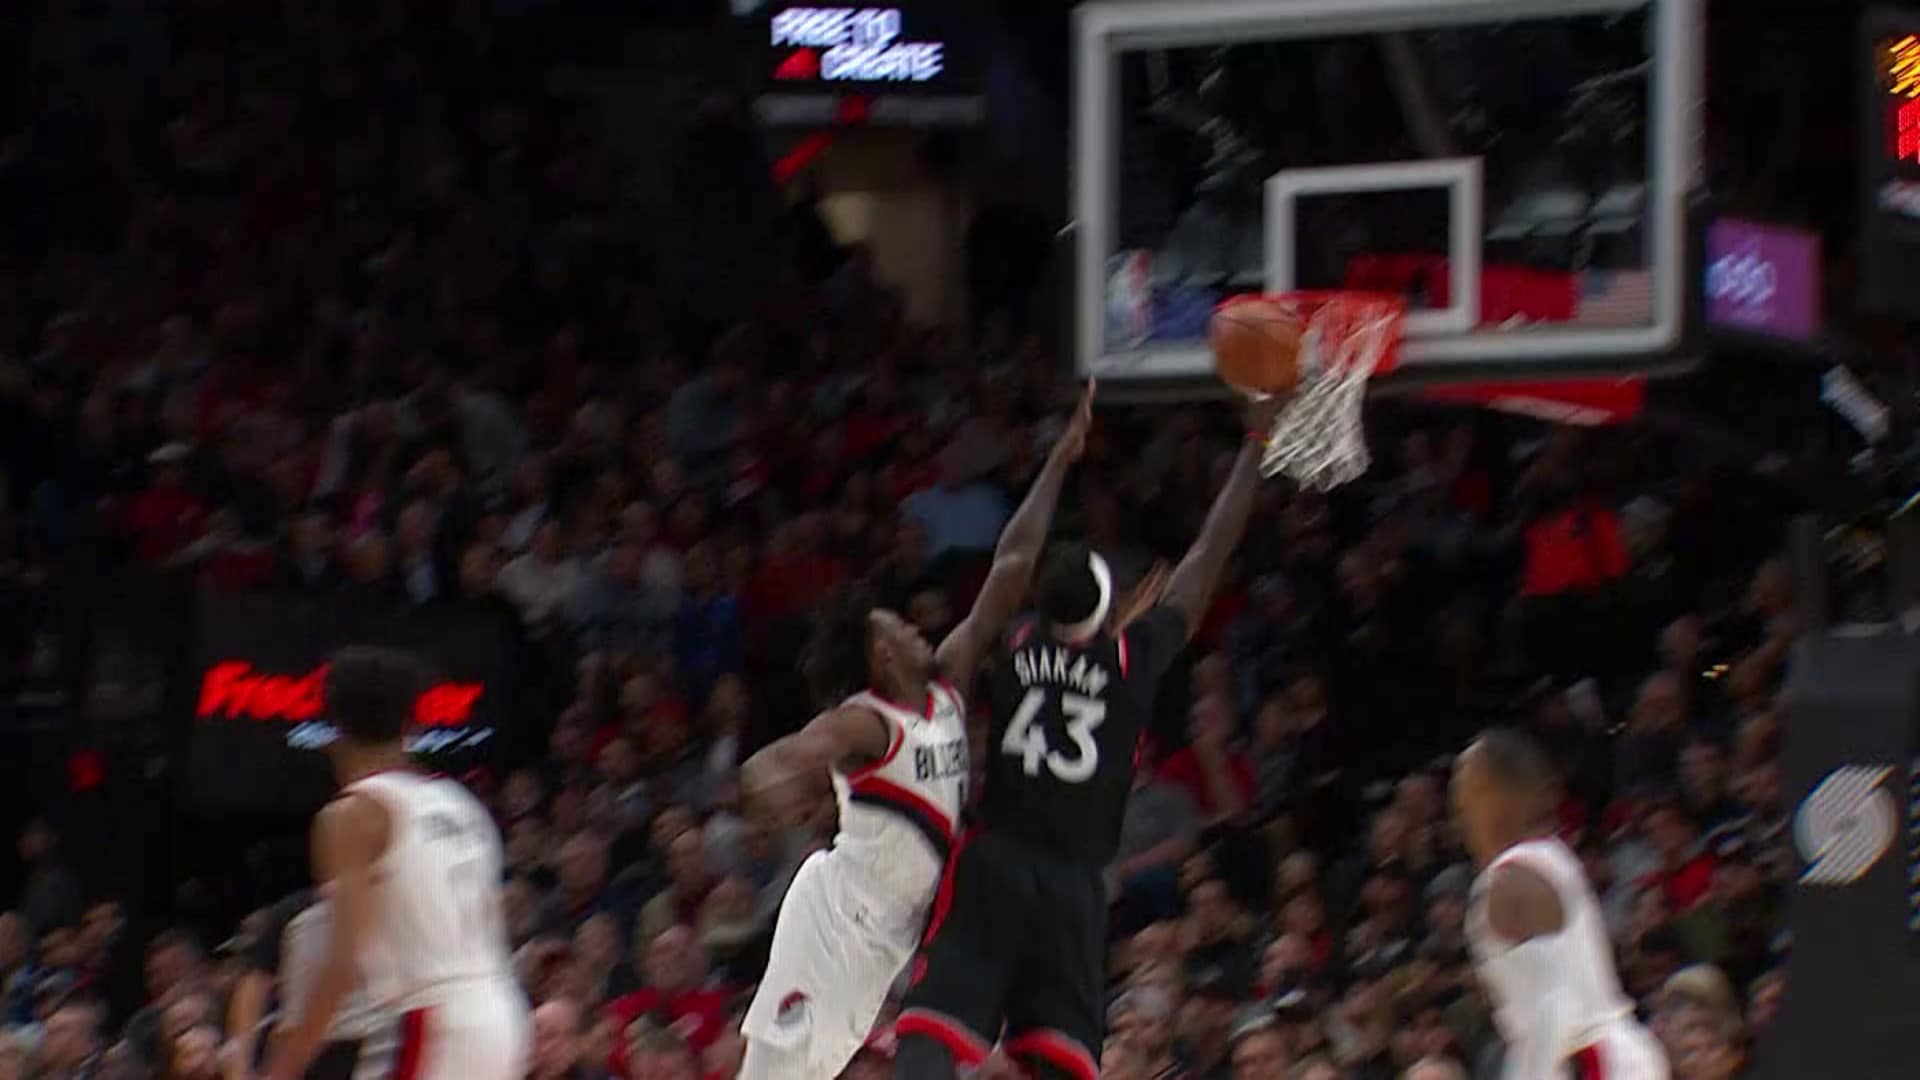 Raptors Highlights: Siakam Spicy Shake - November 13, 2019